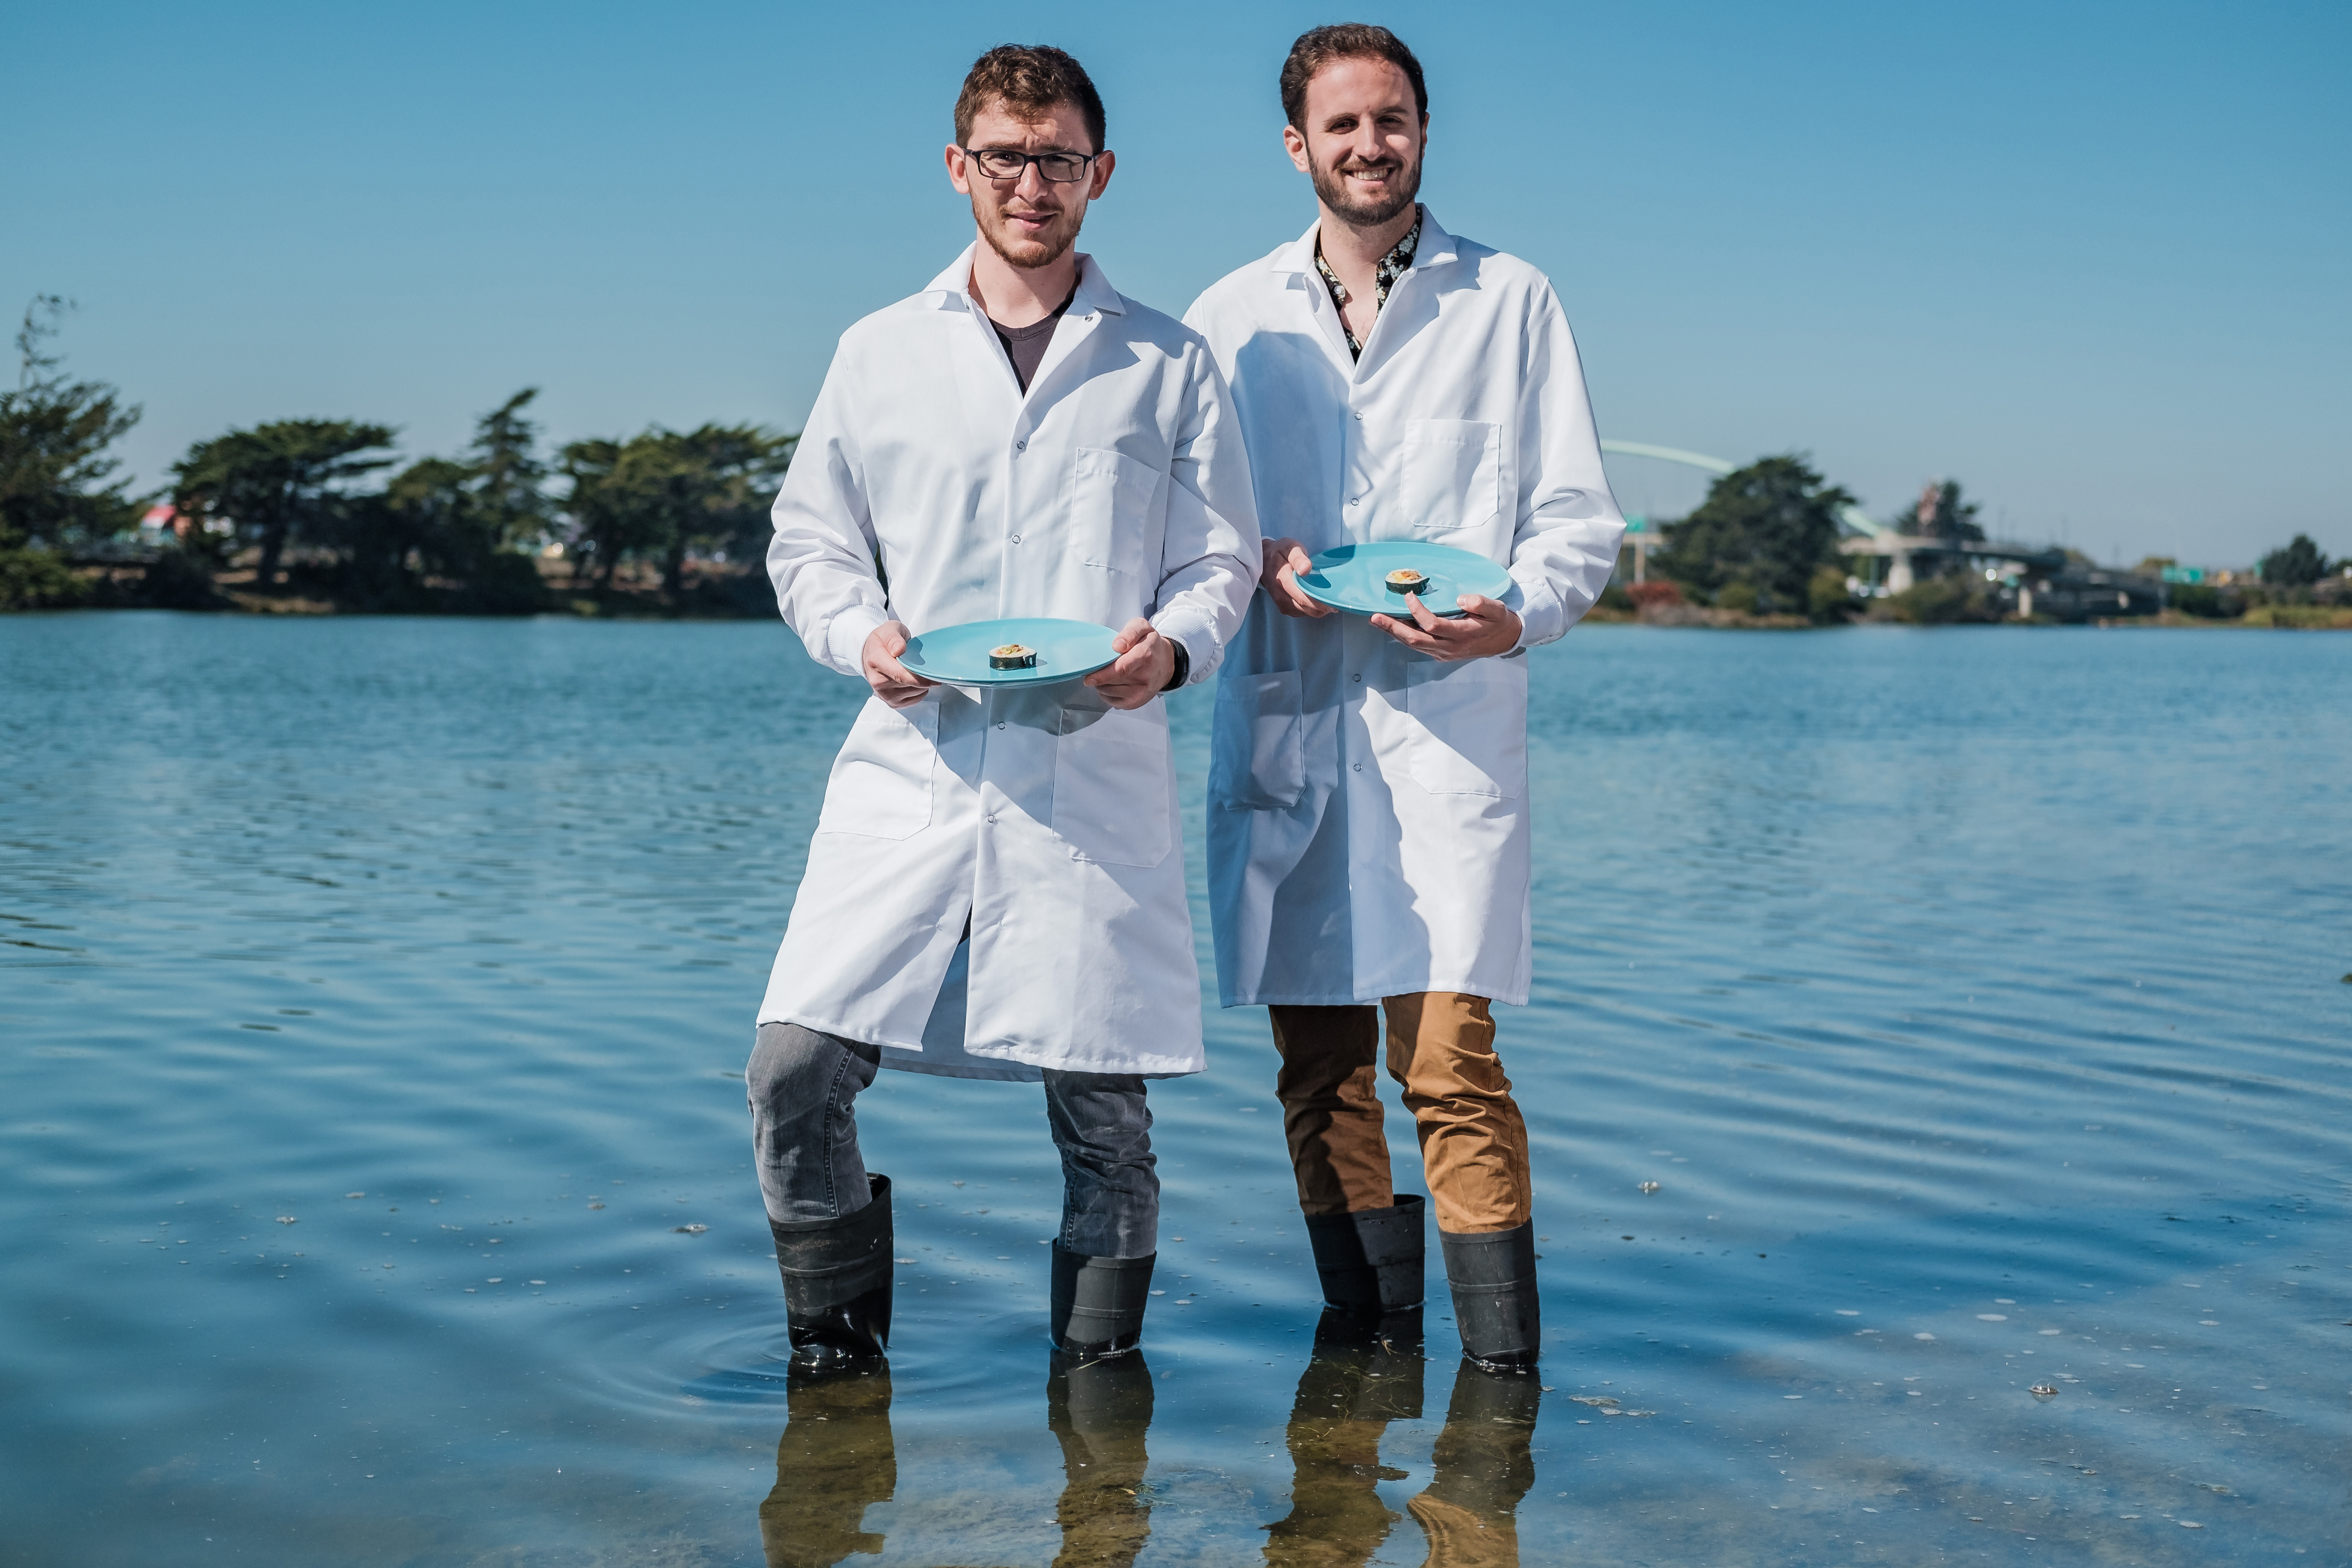 Brian Wyrwas, left, and Mike Selden, founders of Finless Foods. MUST CREDIT: Photo by Nick Otto for The Washington Post.